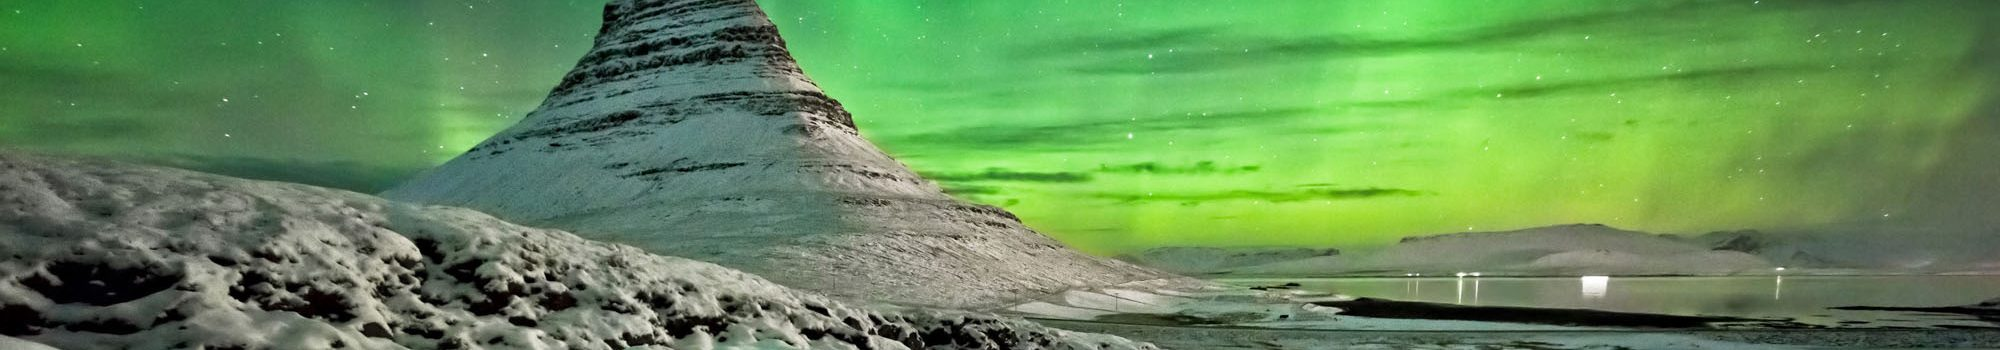 Northern Lights over mount kirkjufell